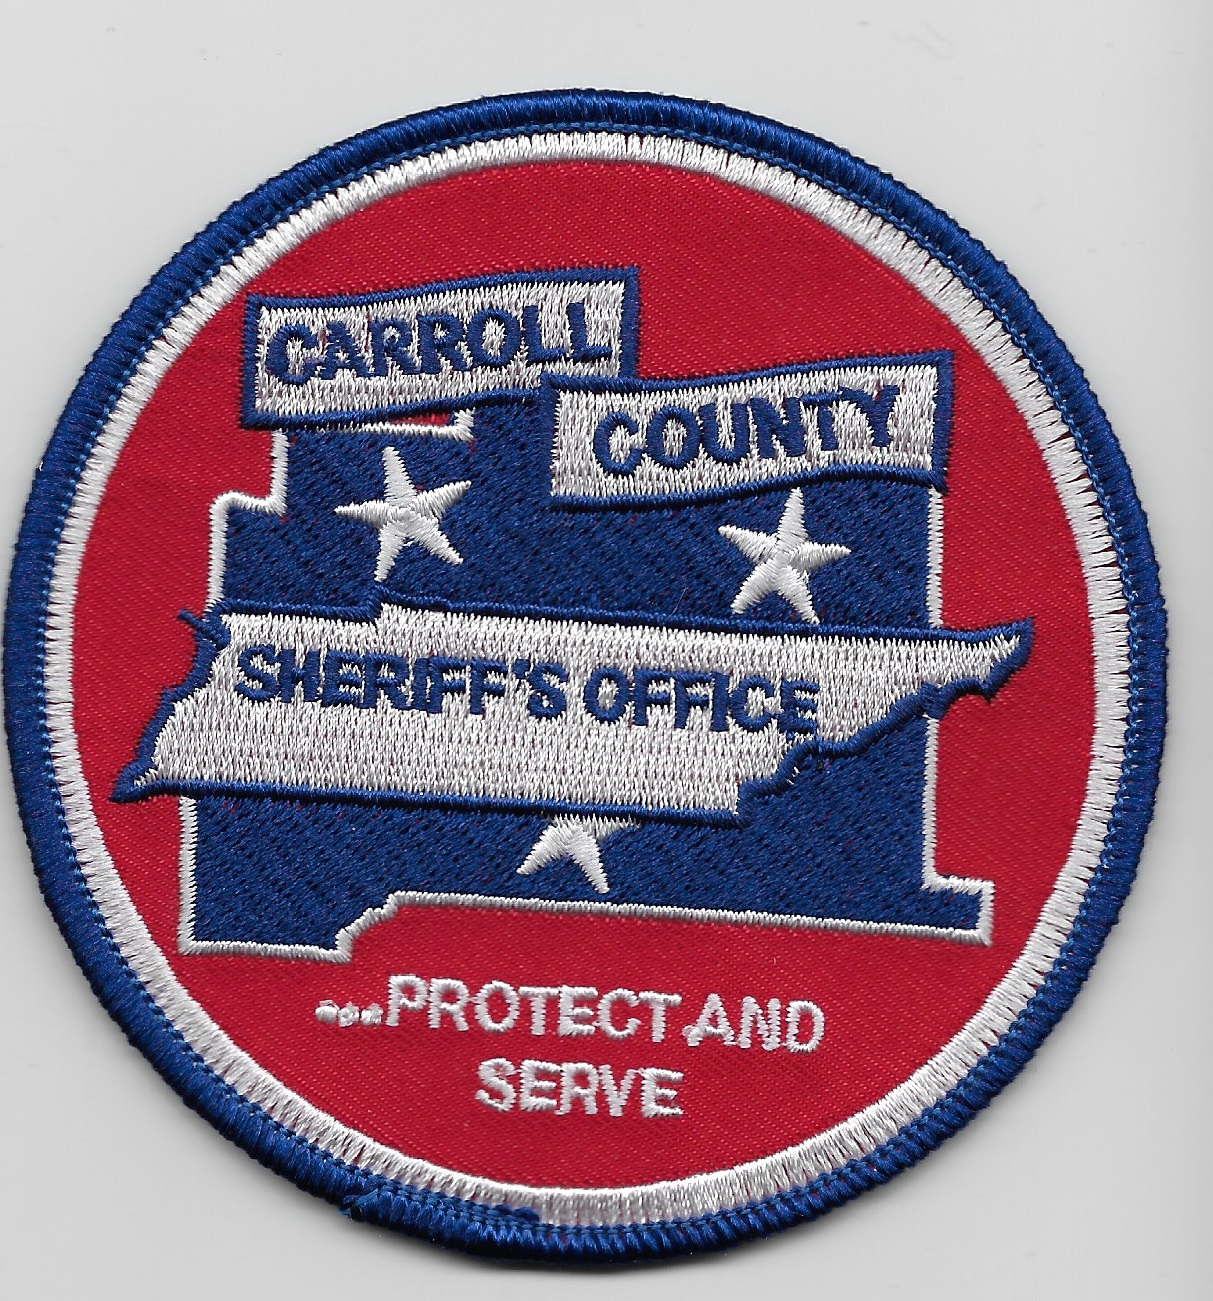 Carroll County Sheriff TN